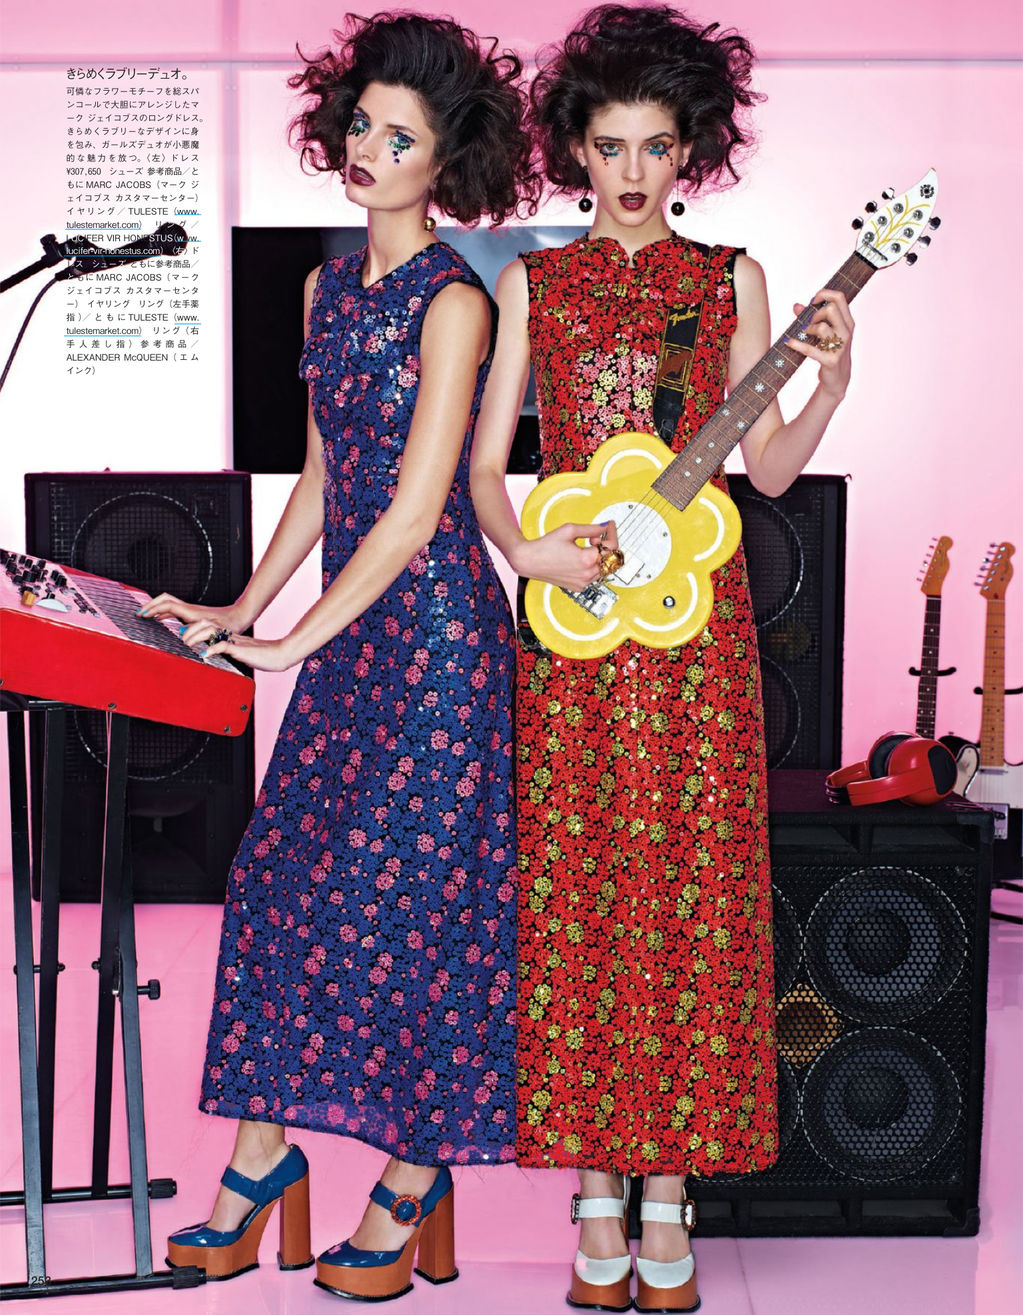 Giovanna-Battaglia-8-Girls-in-the-Band-Vogue-Japan-Sharif-Hamza.jpg